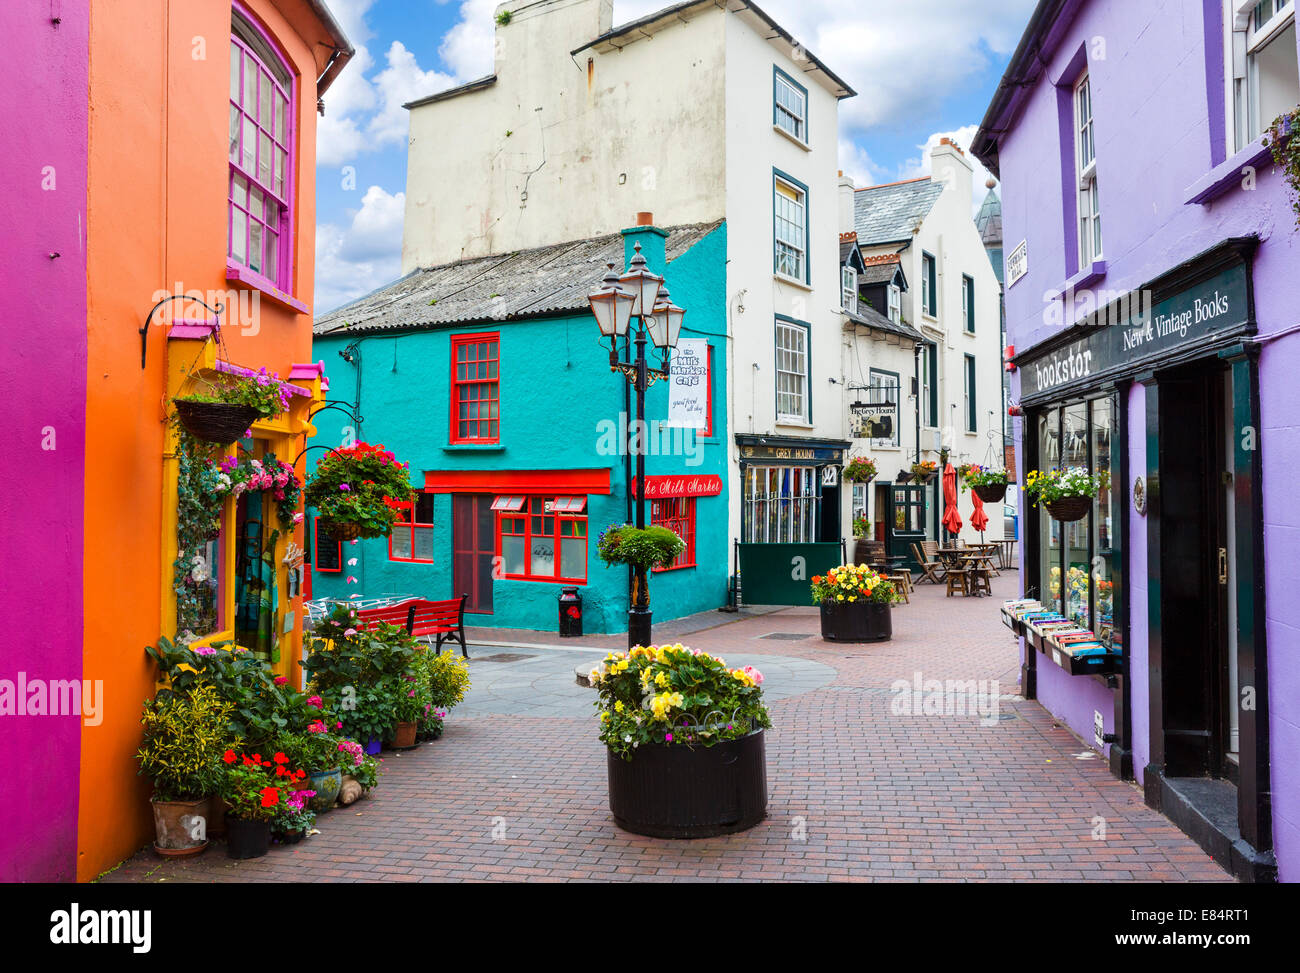 Kinsale County Cork Stock Photos & Kinsale County Cork Stock